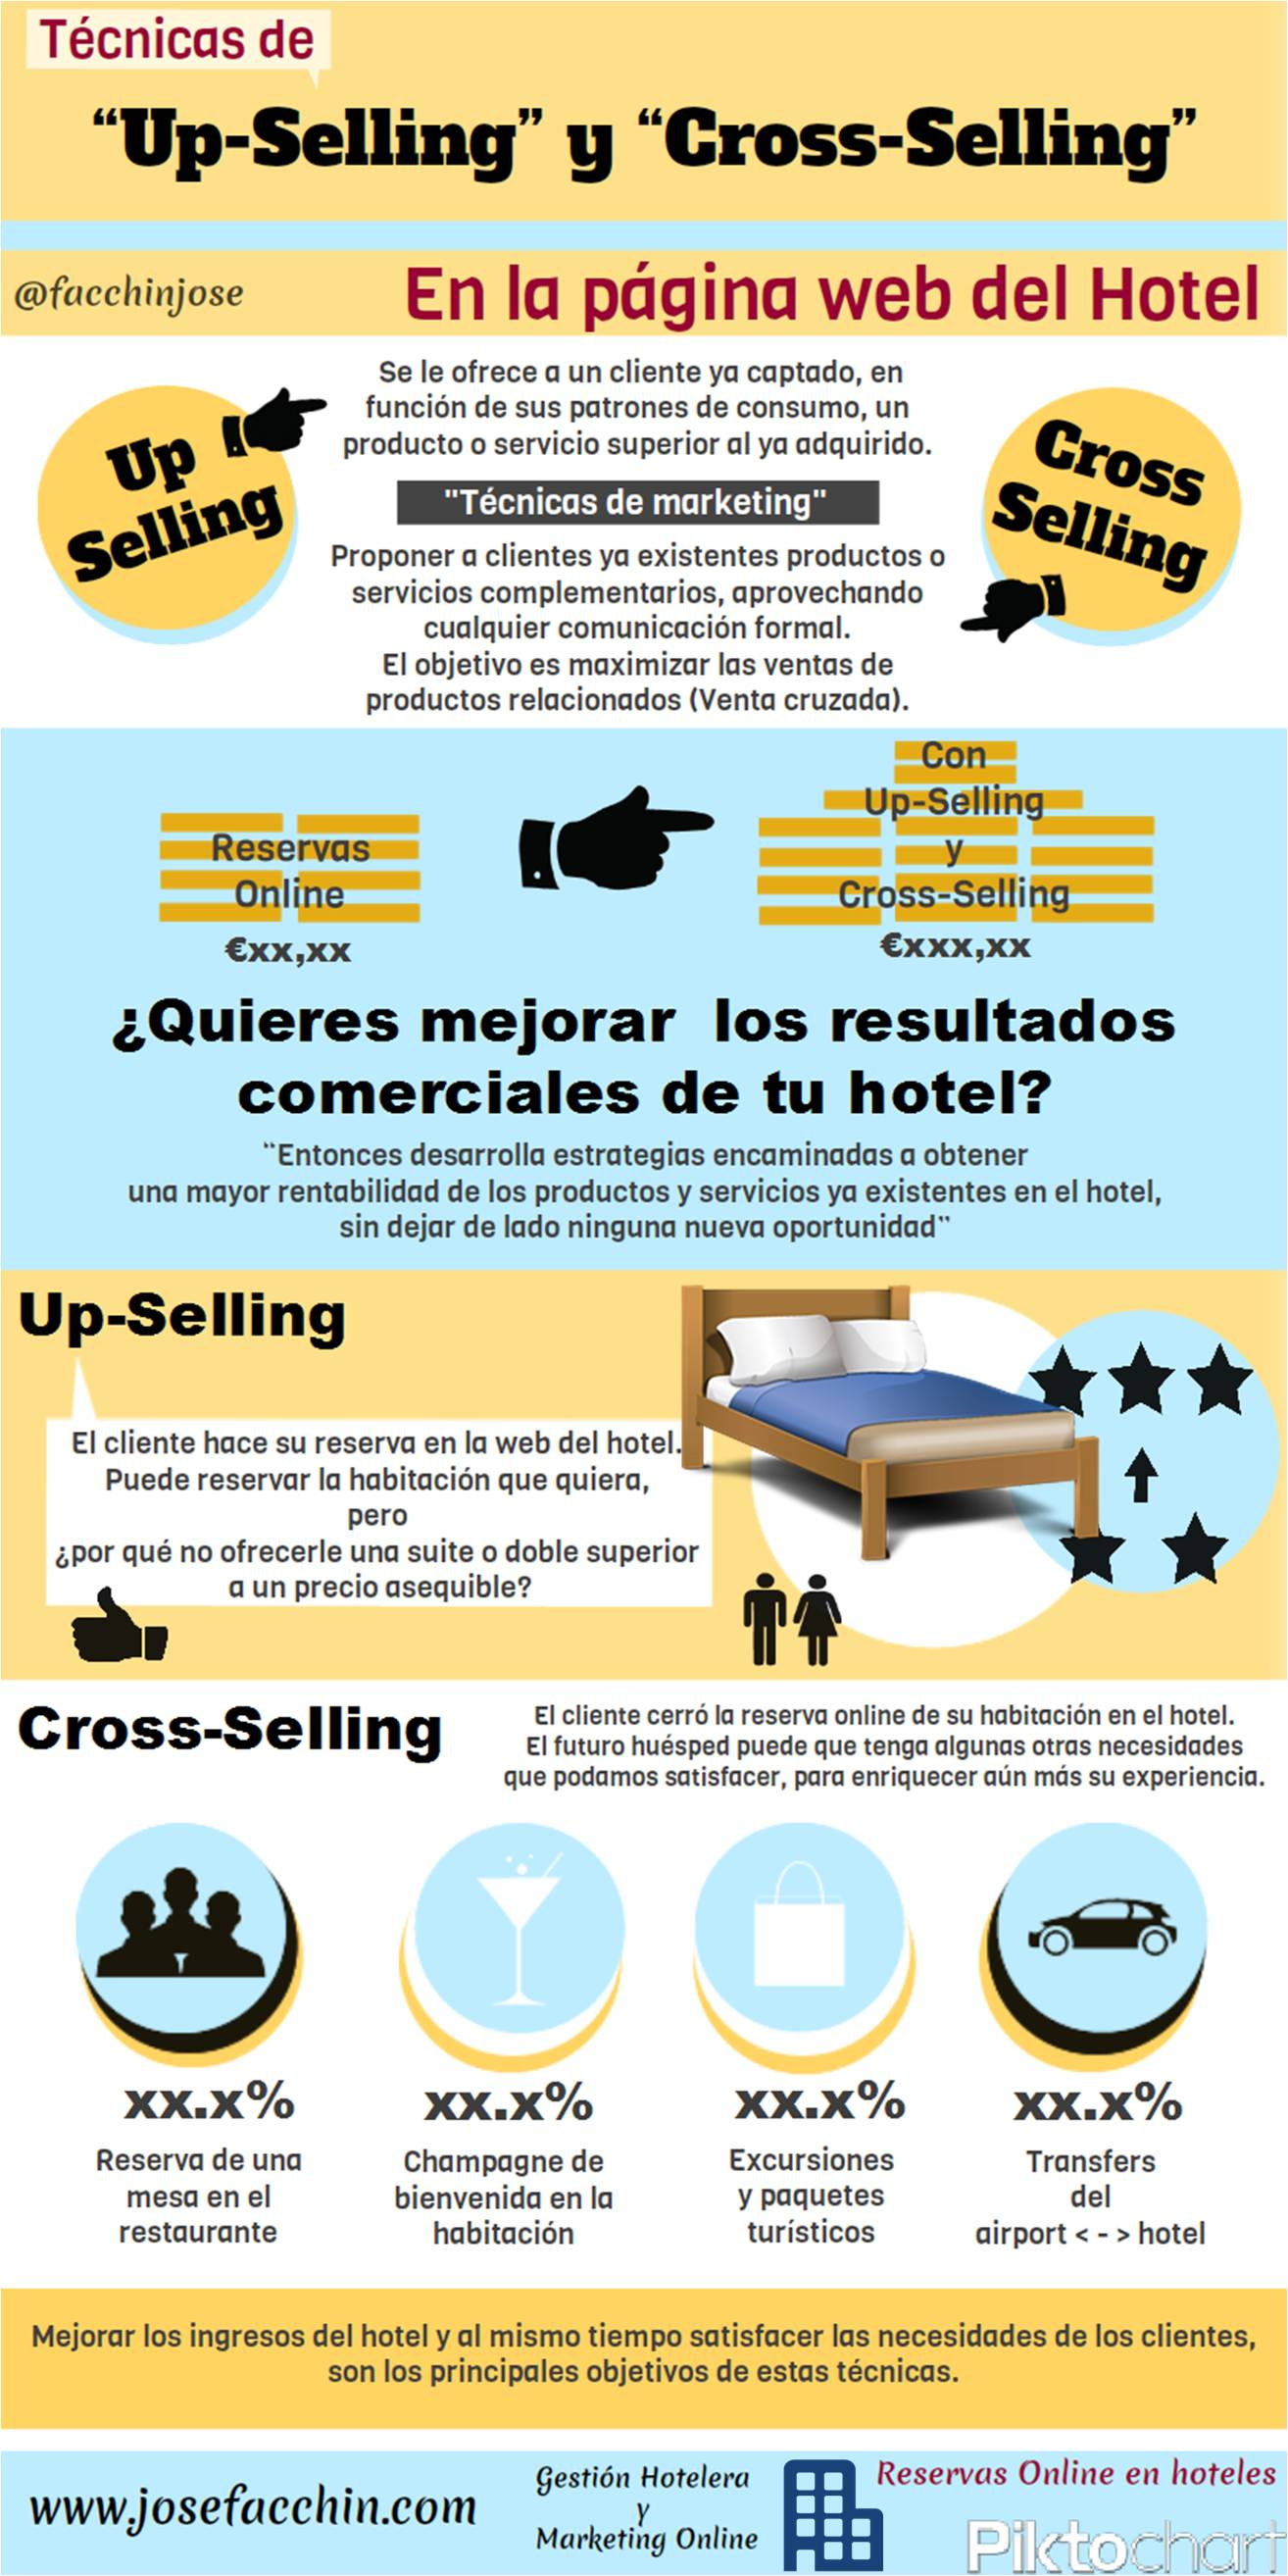 Diferencias entre cross selling y up selling